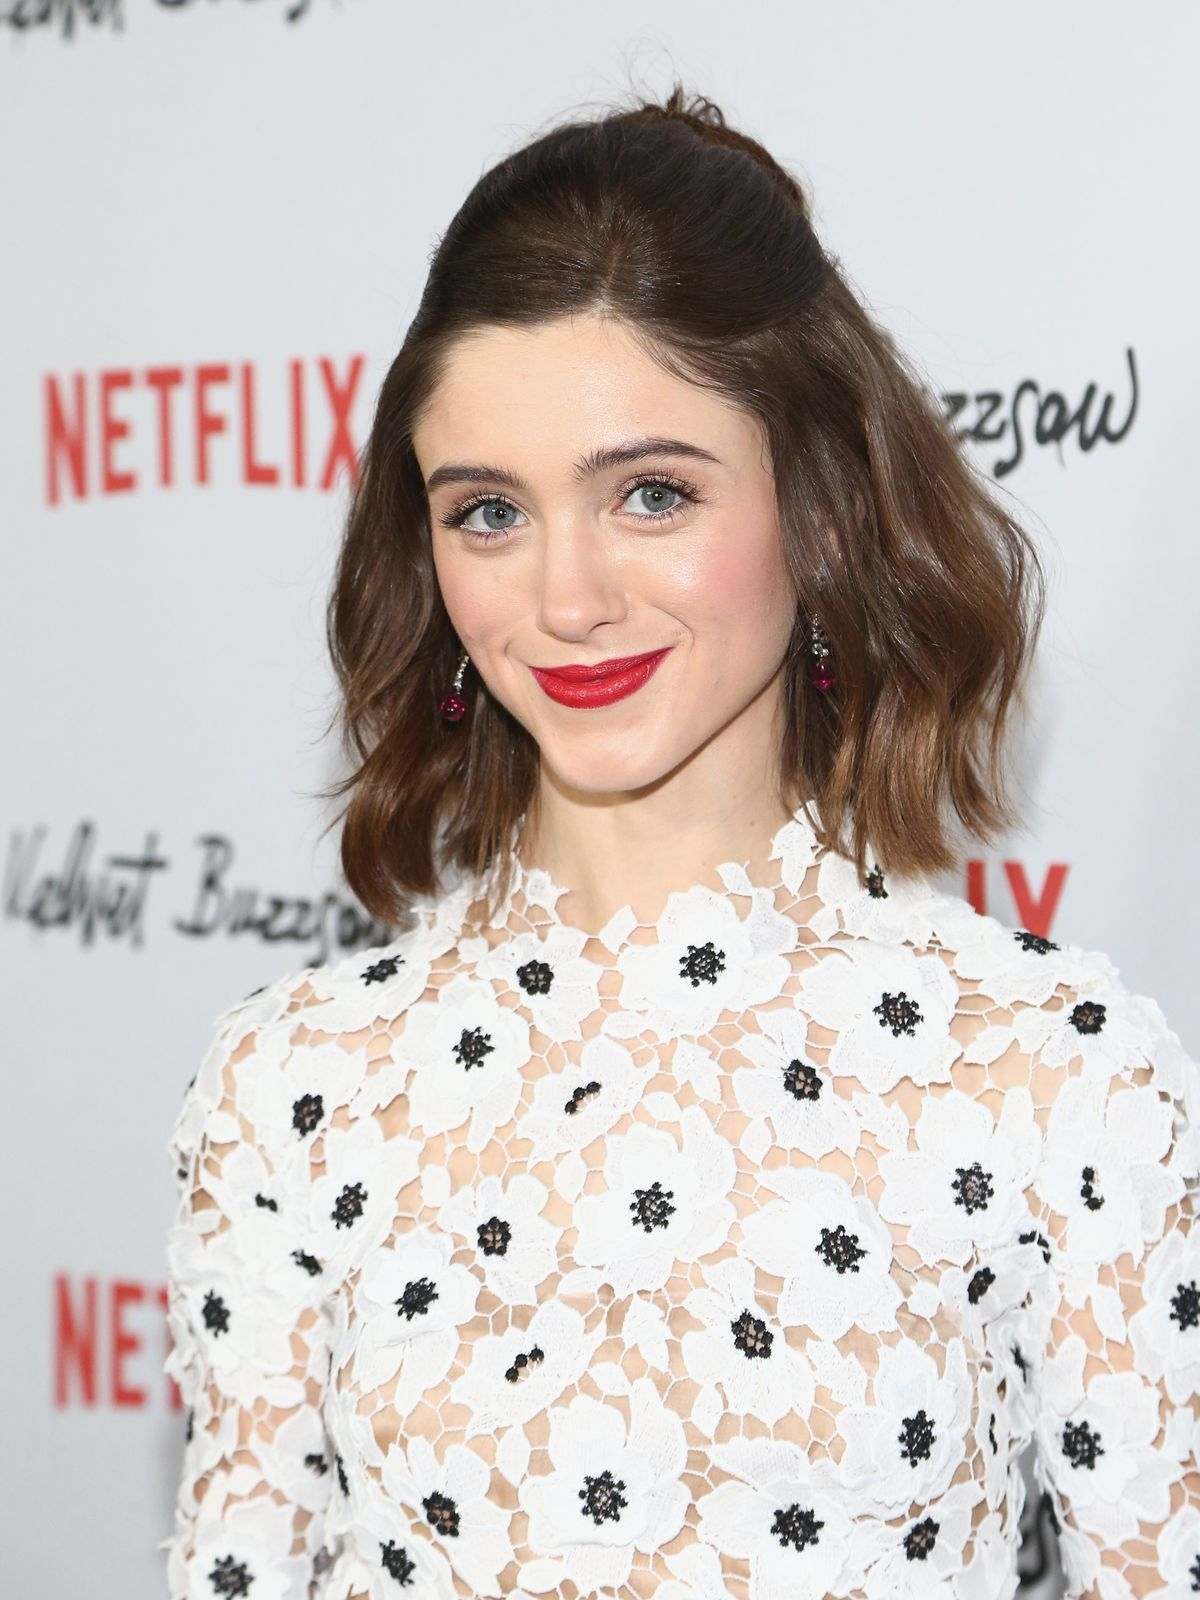 Natalia Dyer attending a red carpet event/Photo:Getty Images